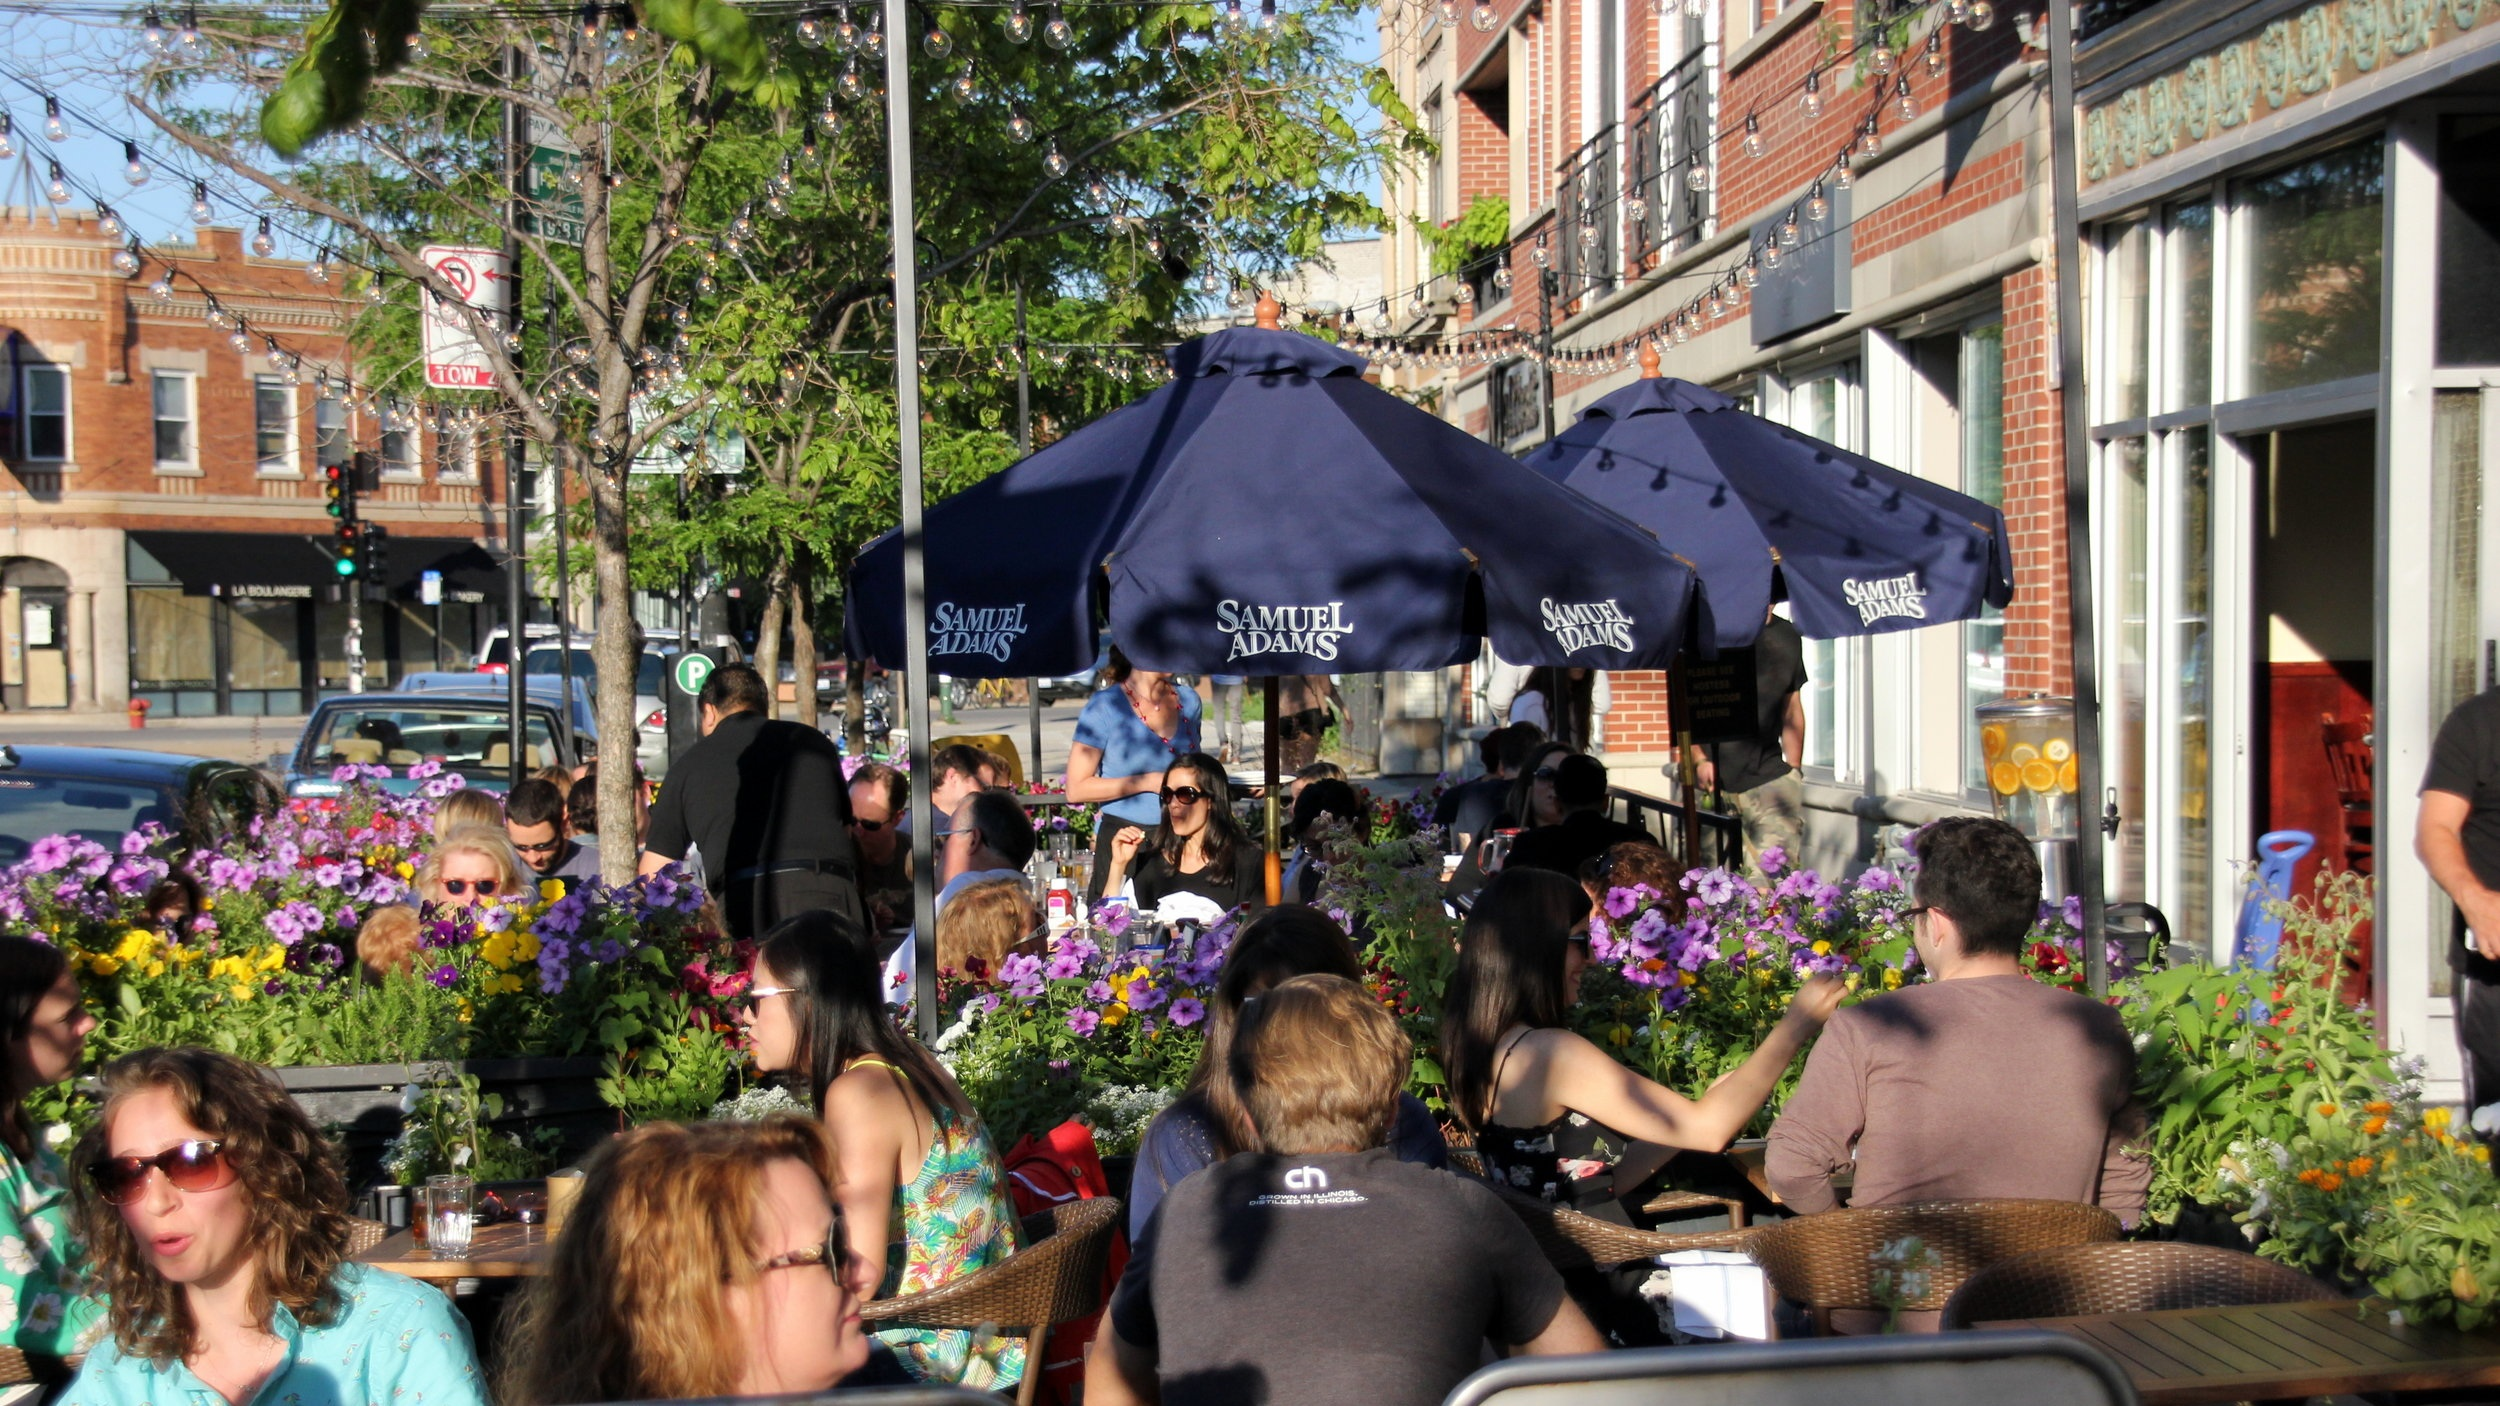 Brunching on Sunday is a popular activity in Logan Square